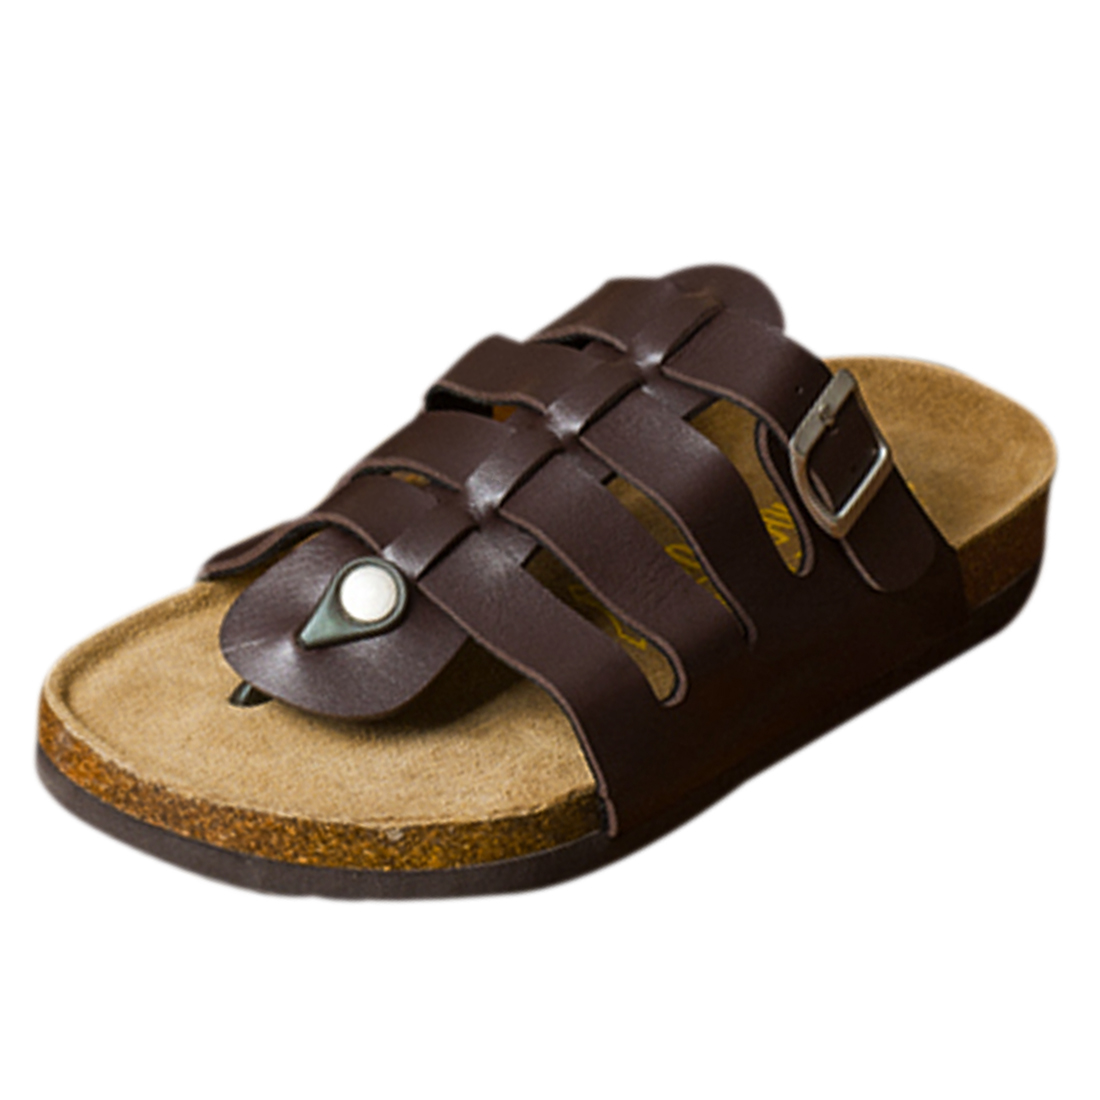 Men Brown Faux Leather Buckled Gladiator Thong Sandals US 8